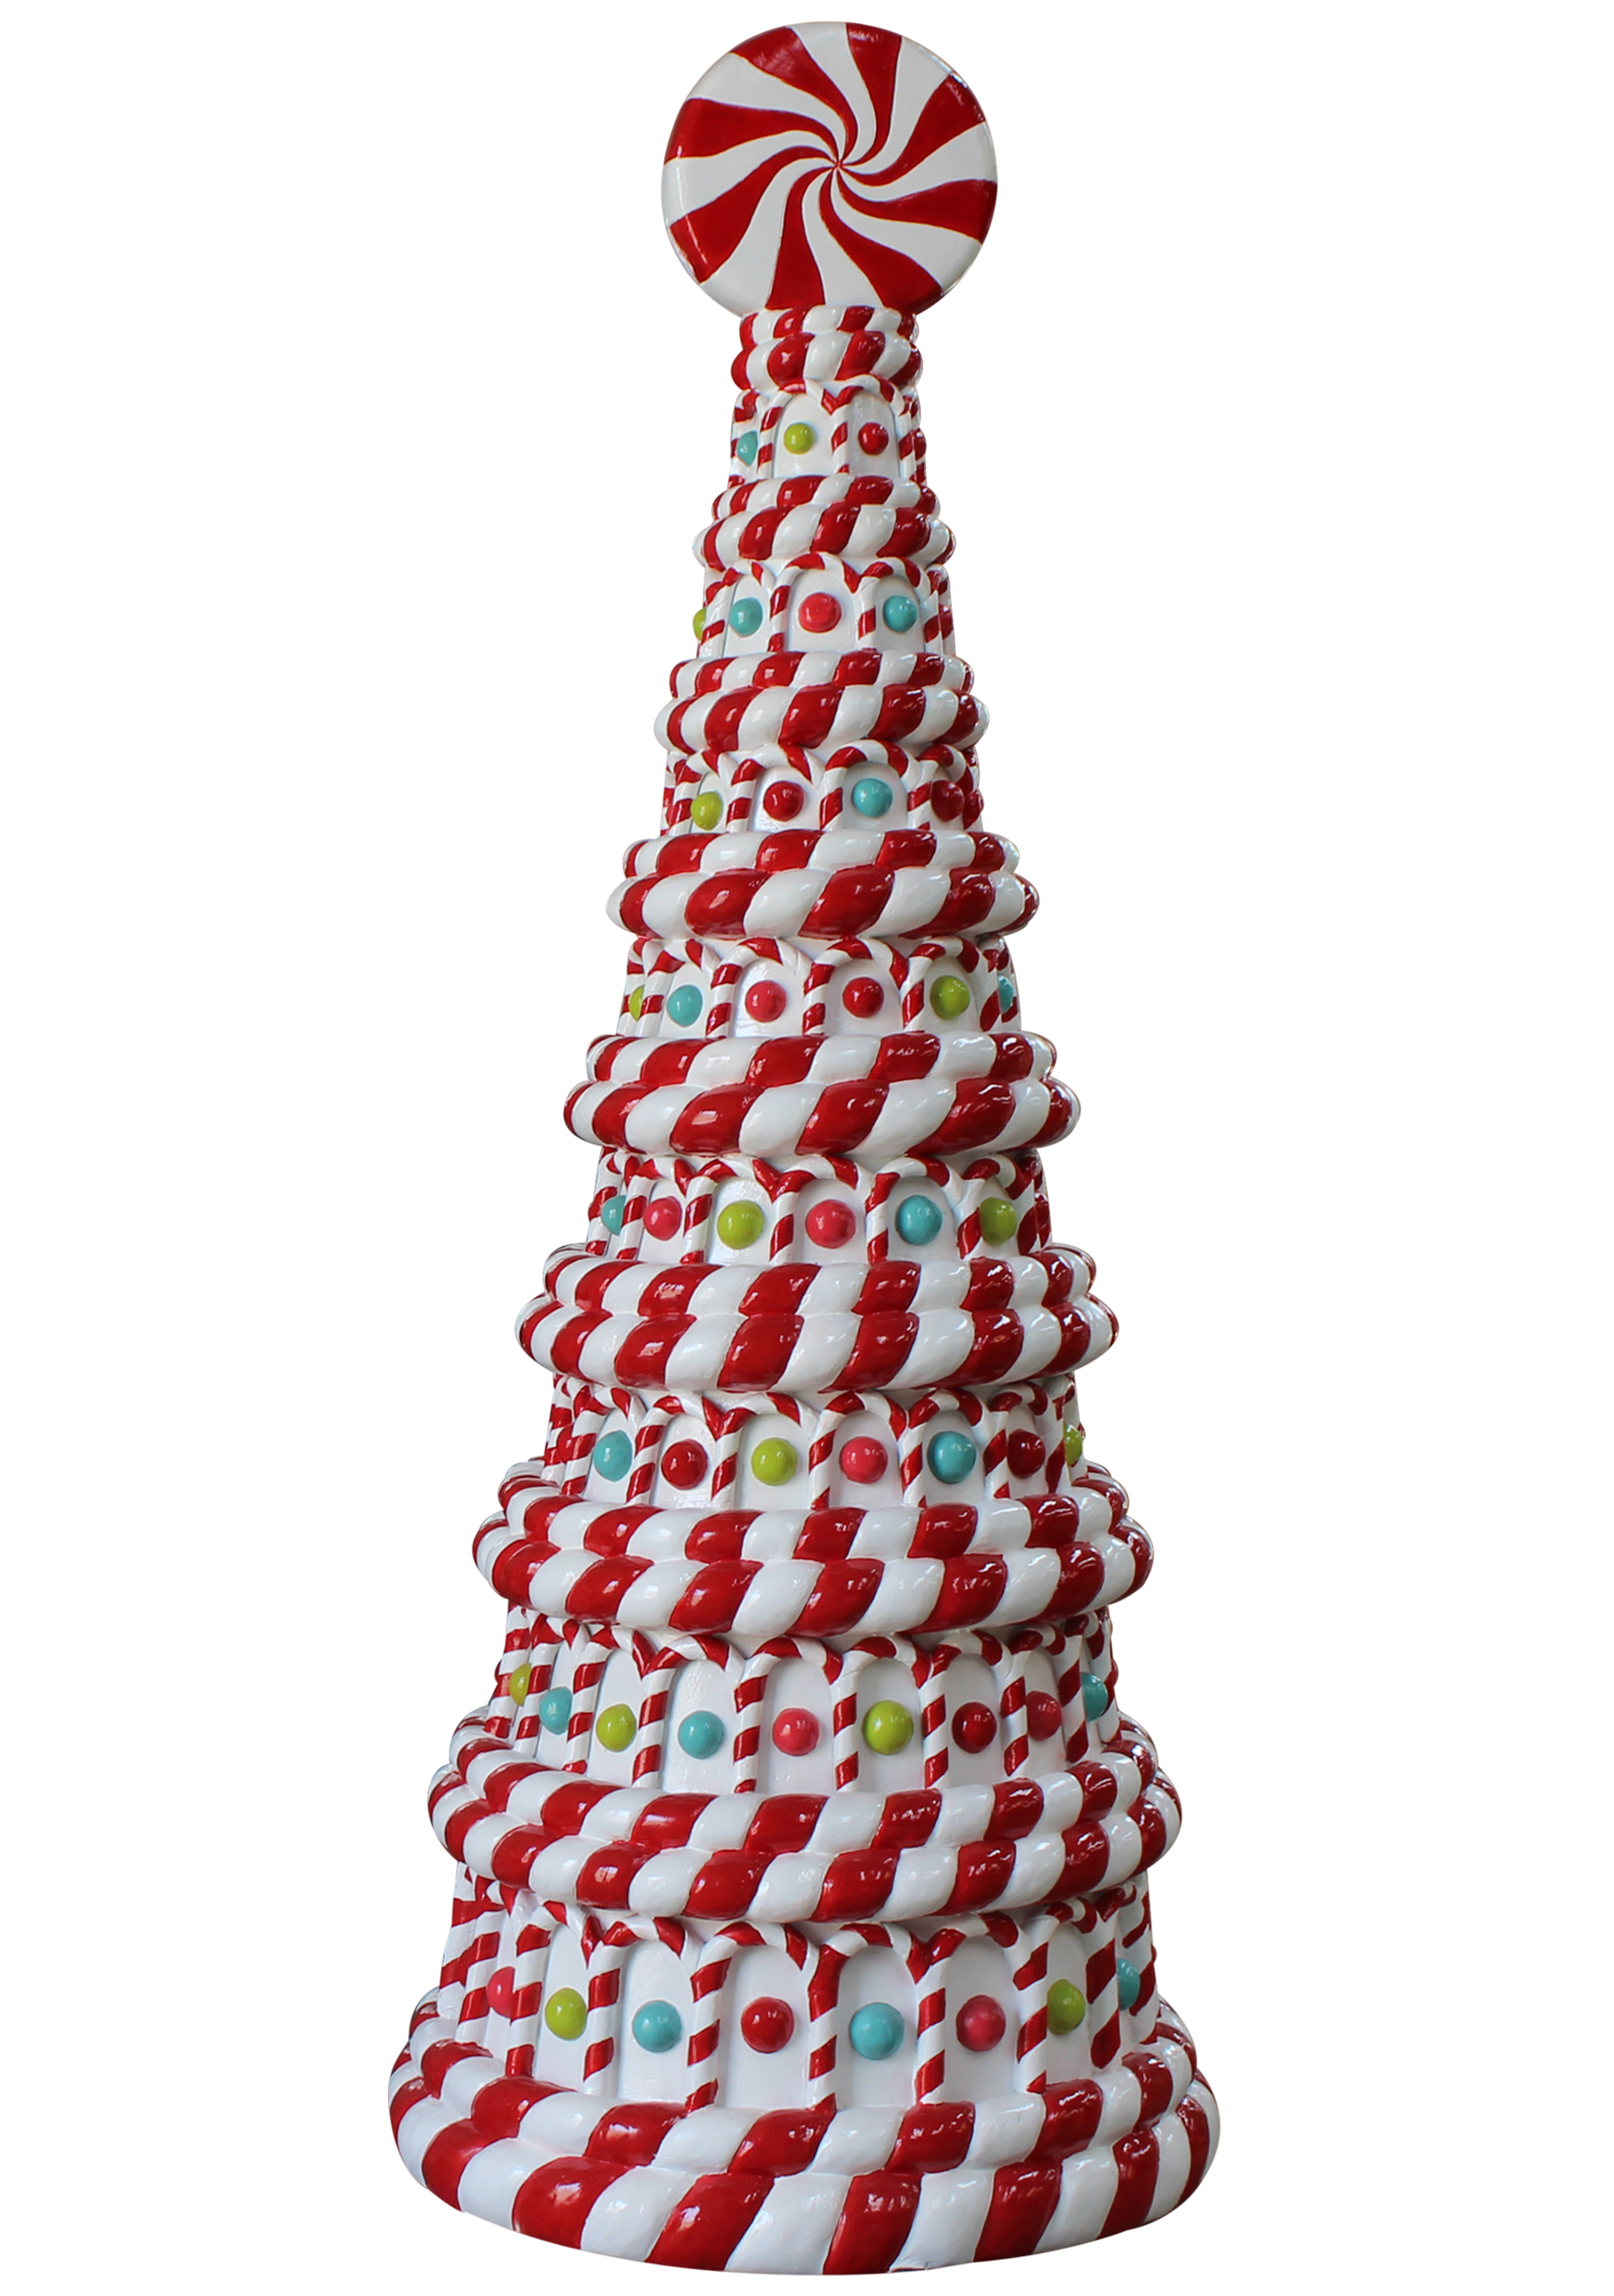 8' Peppermint Candy Tree